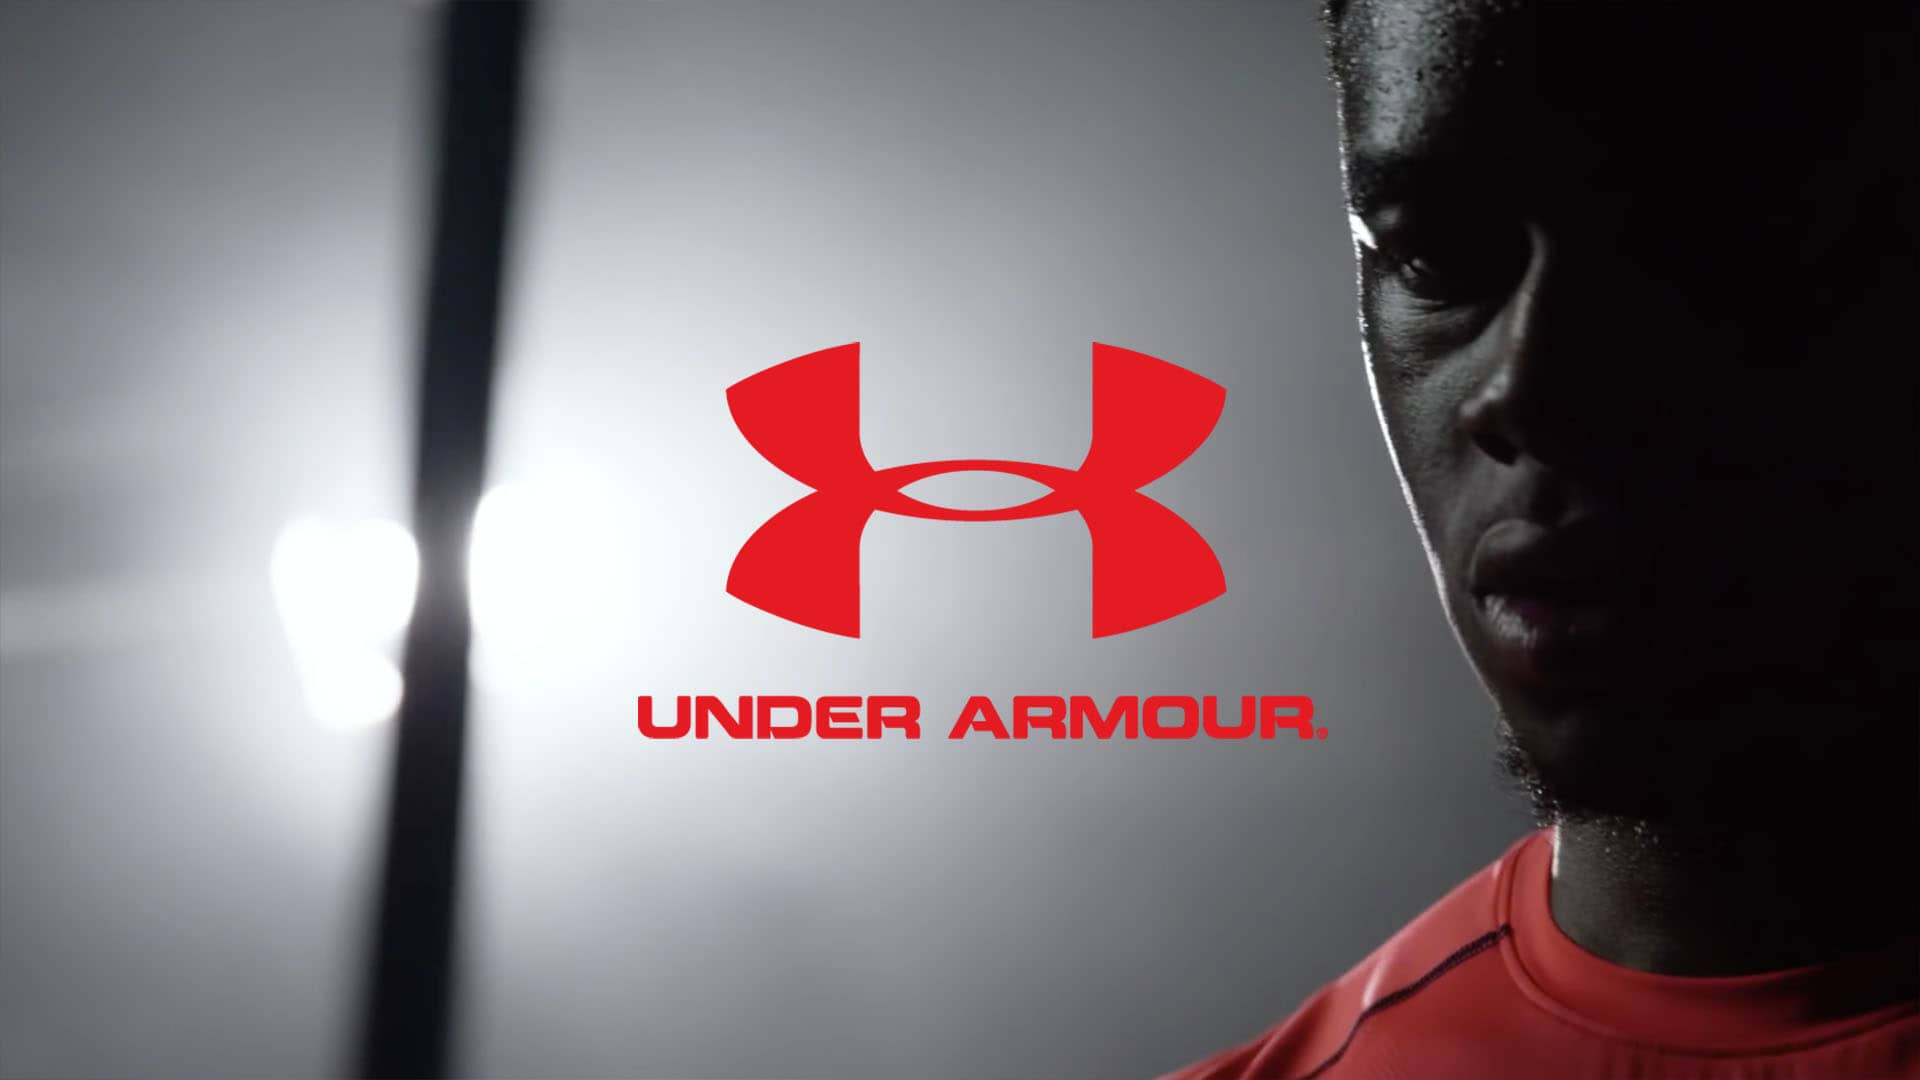 i will under armour wallpaper - photo #15